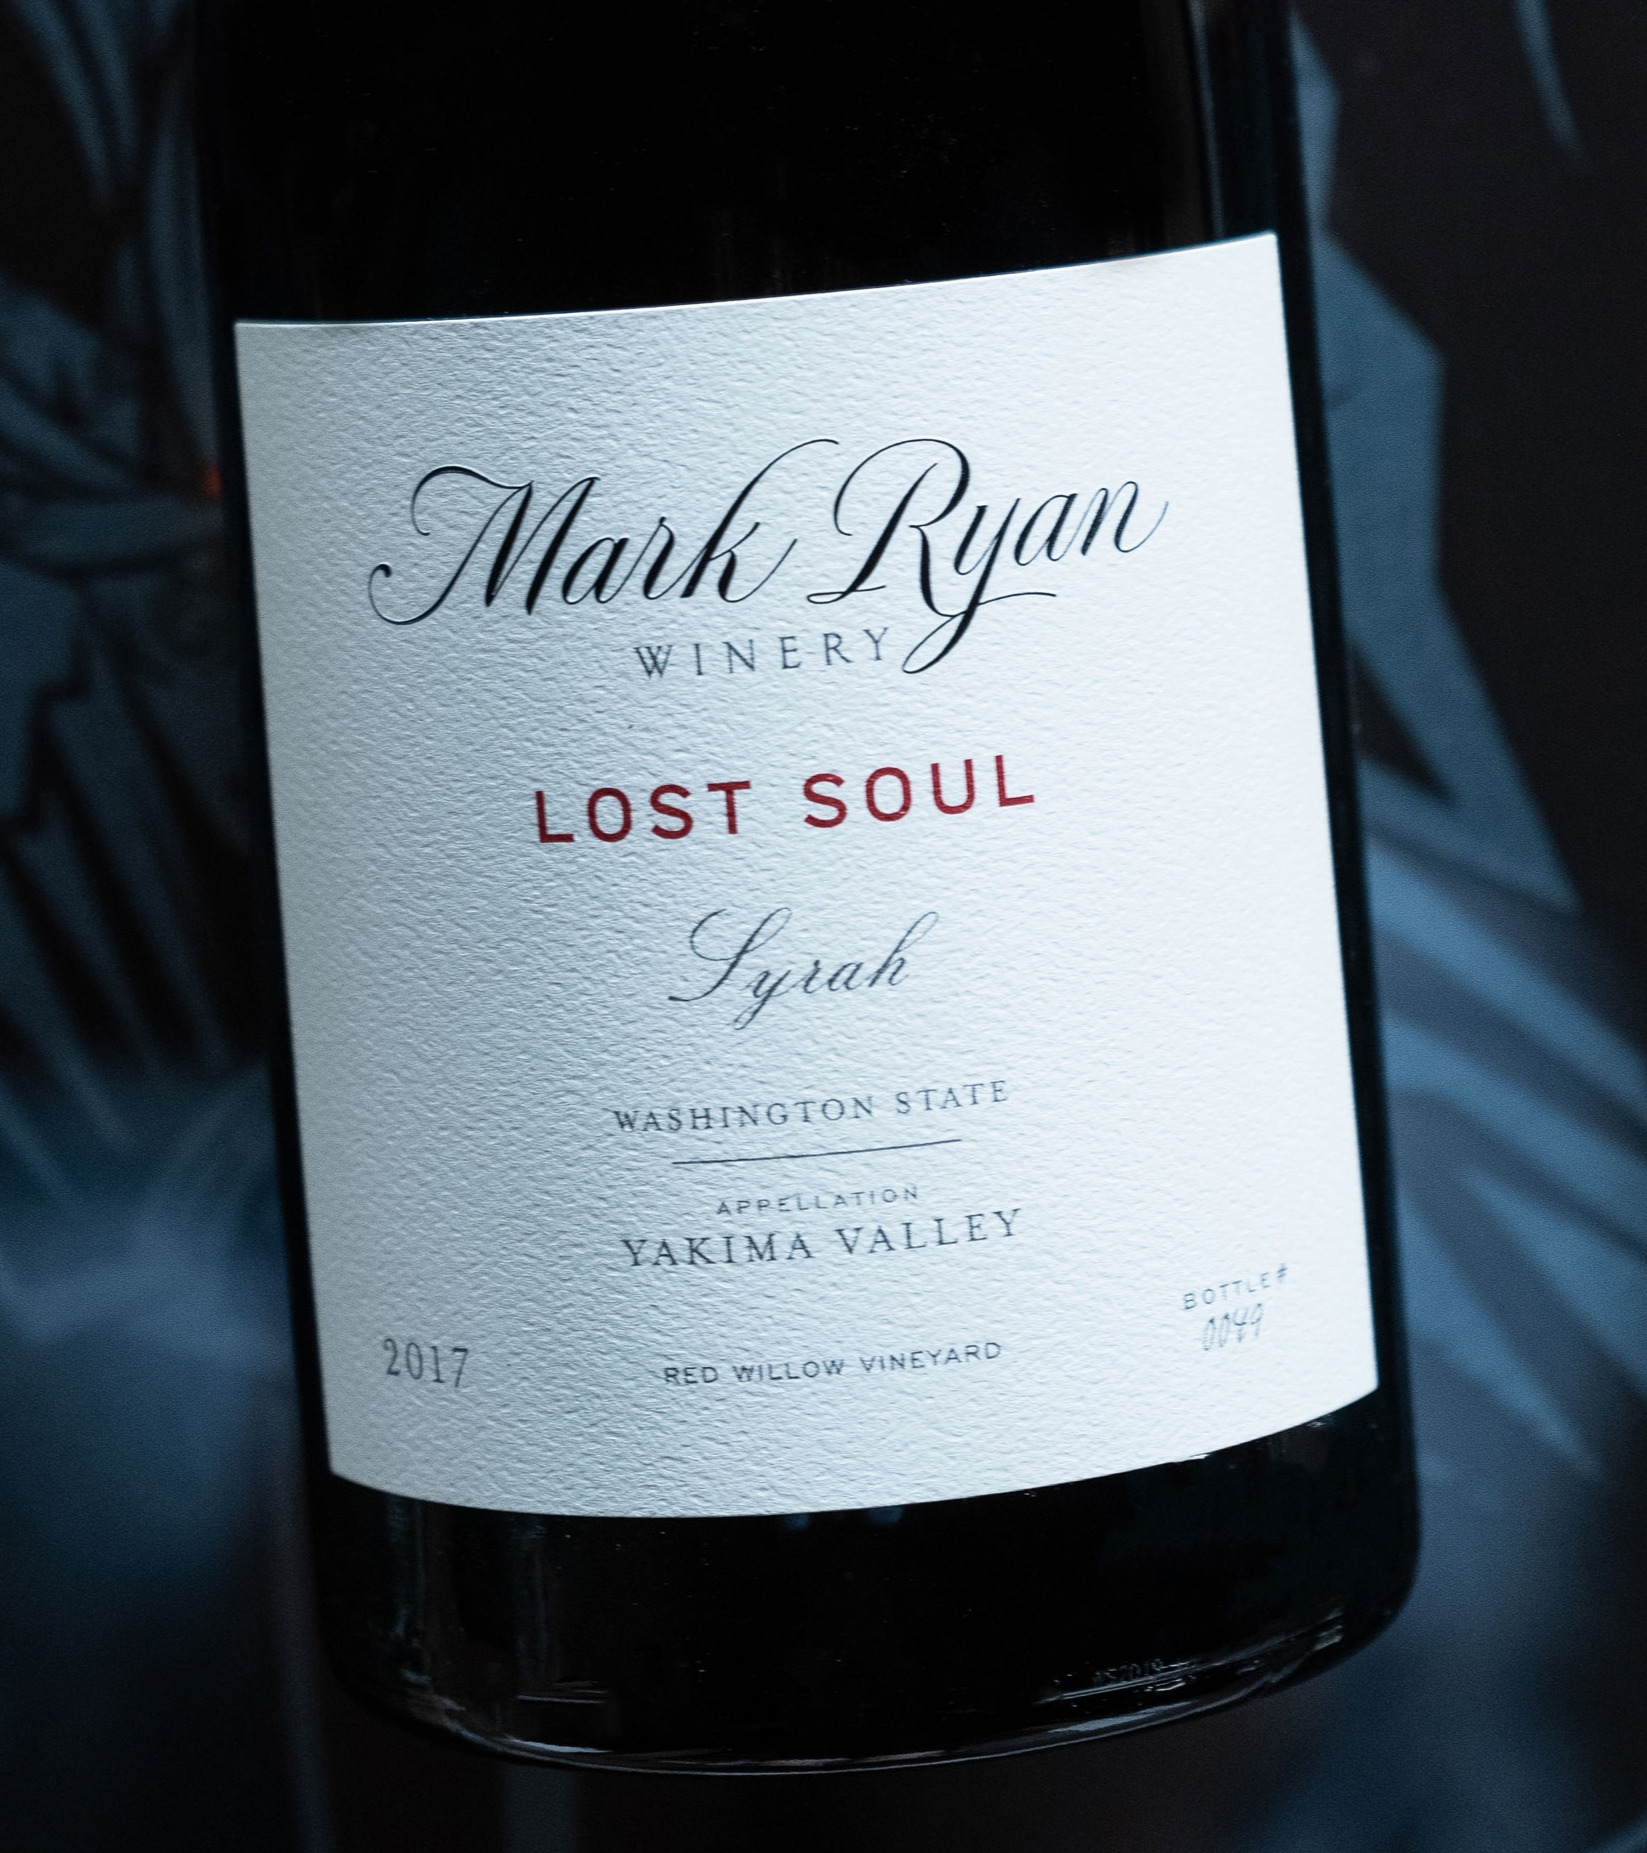 Bottle of Lost Soul